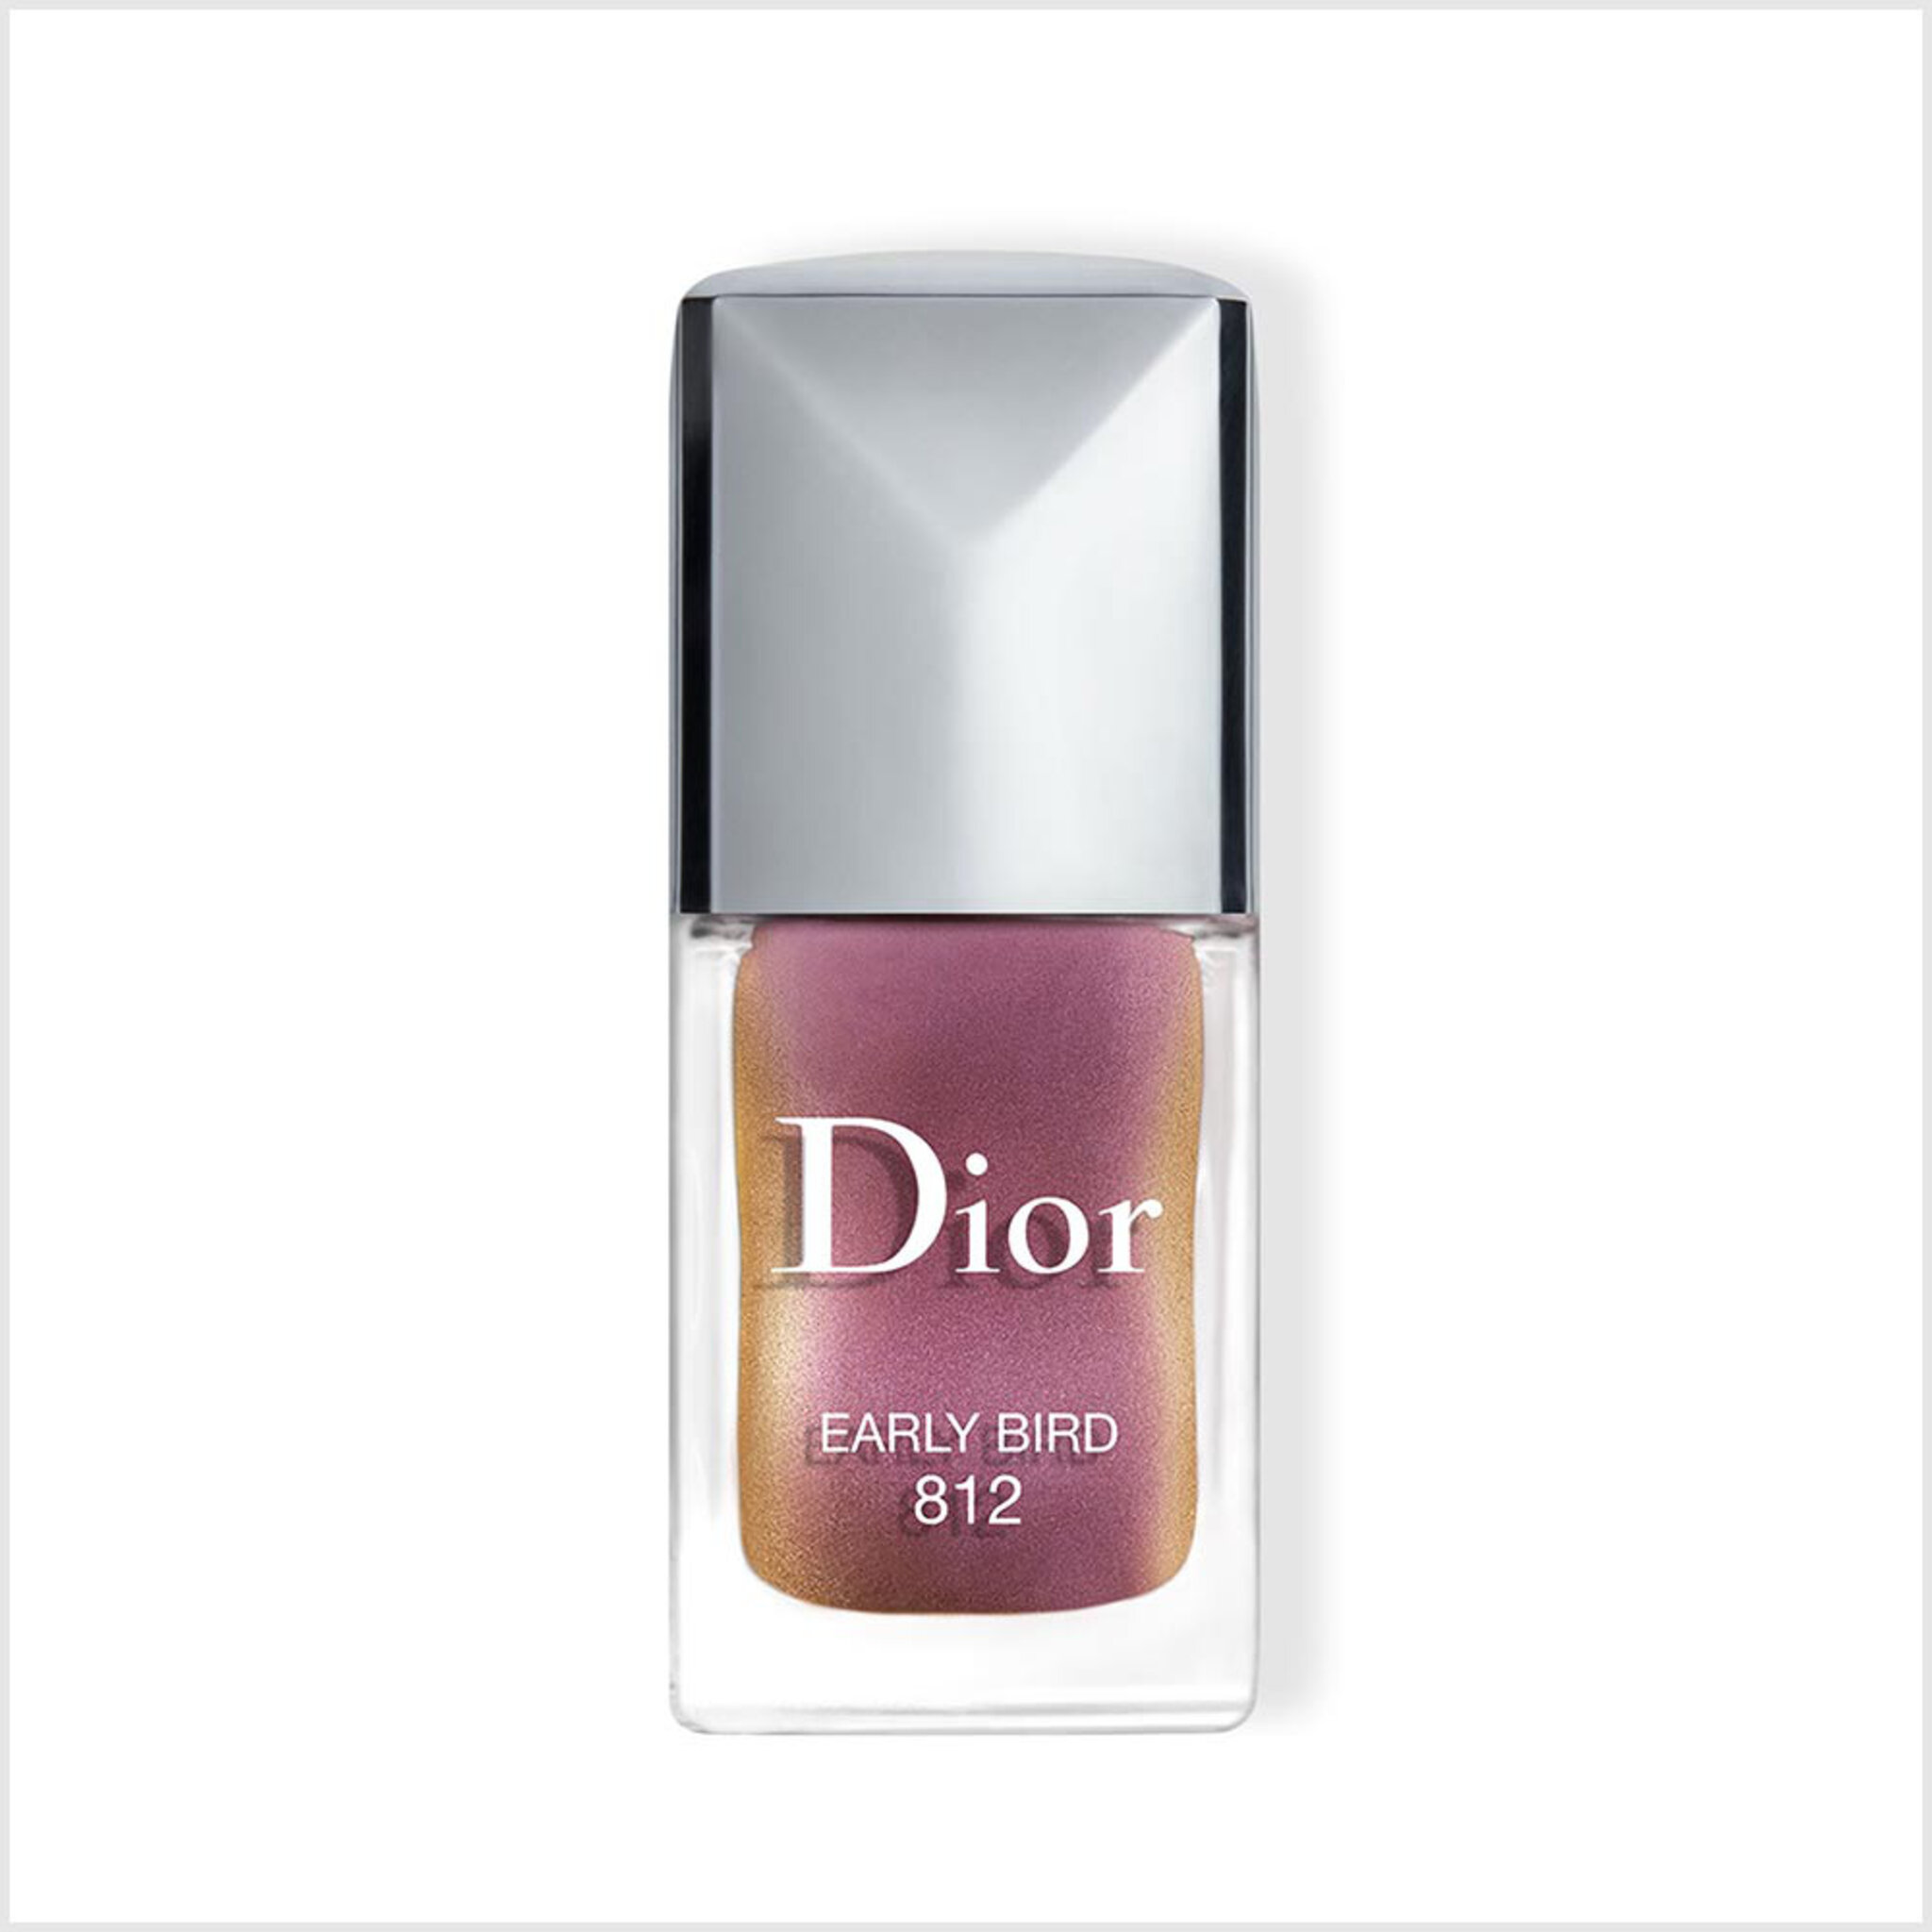 Rouge Dior Vernis - Limited Edition Nail Lacquer